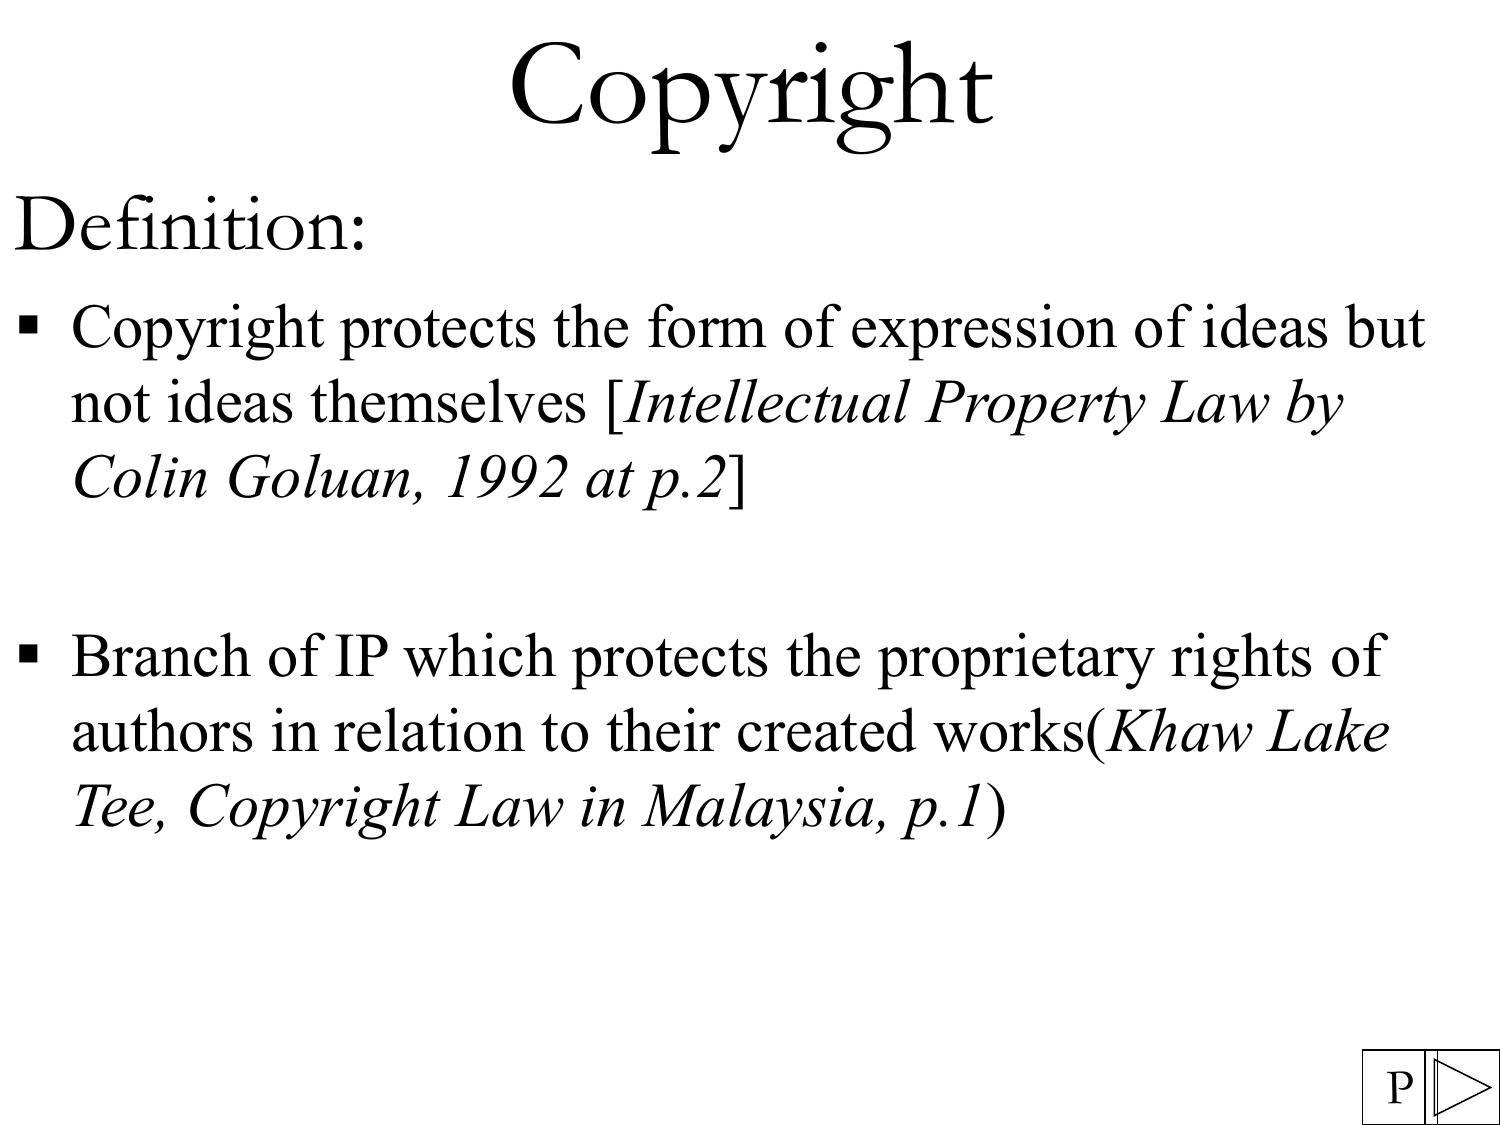 copyright - intellectual property homepage